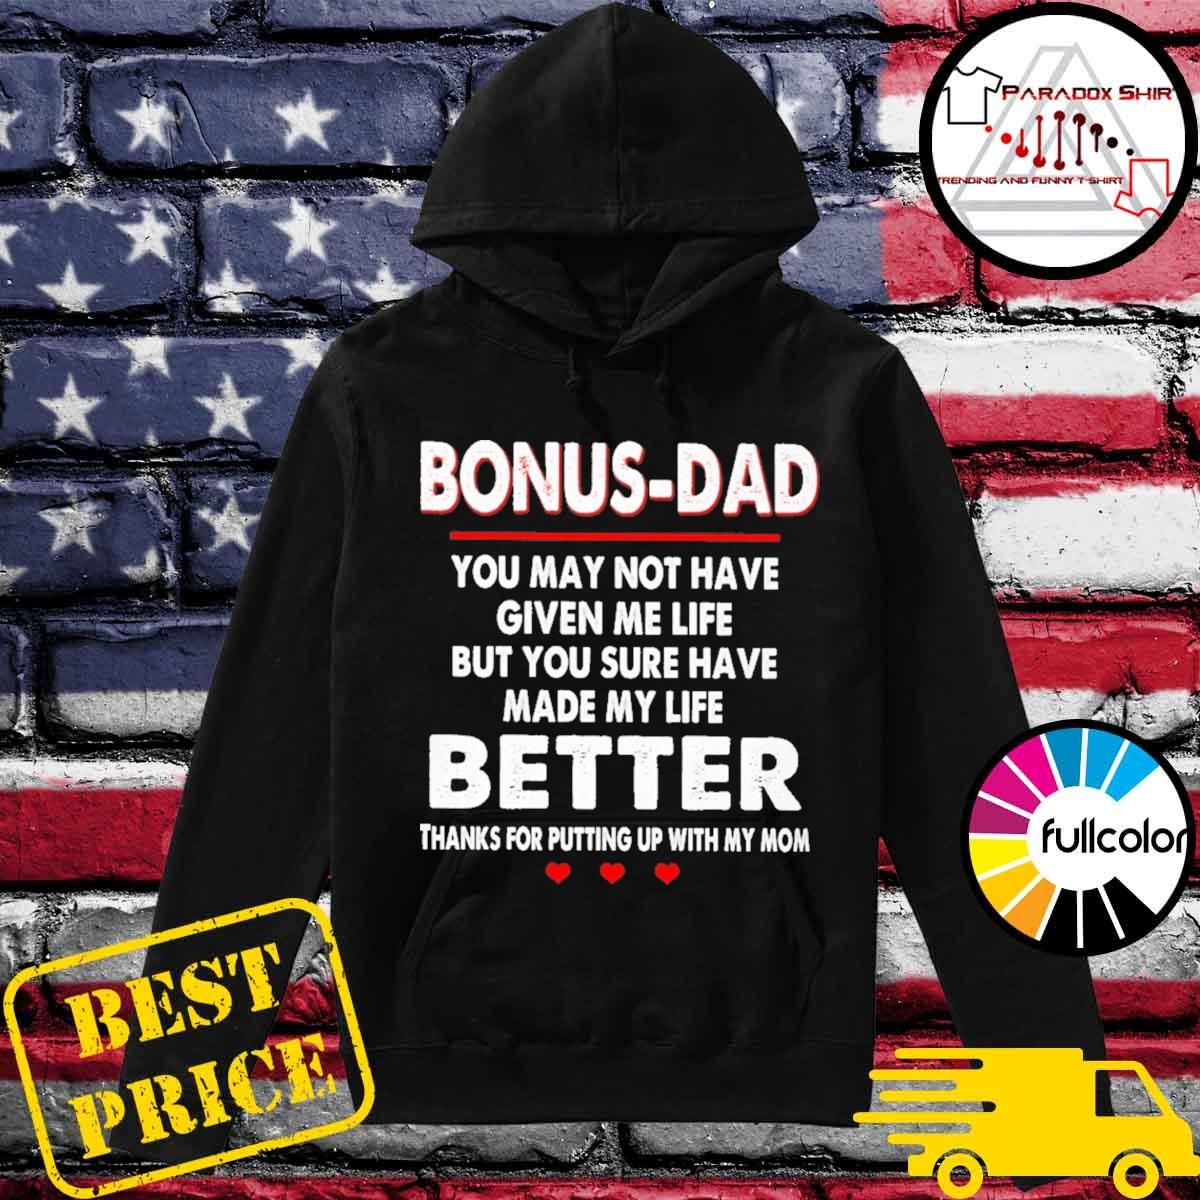 Bonus-Dad you may not have given me life but you sure have made my life better thanks for putting up with my mom Hoodie